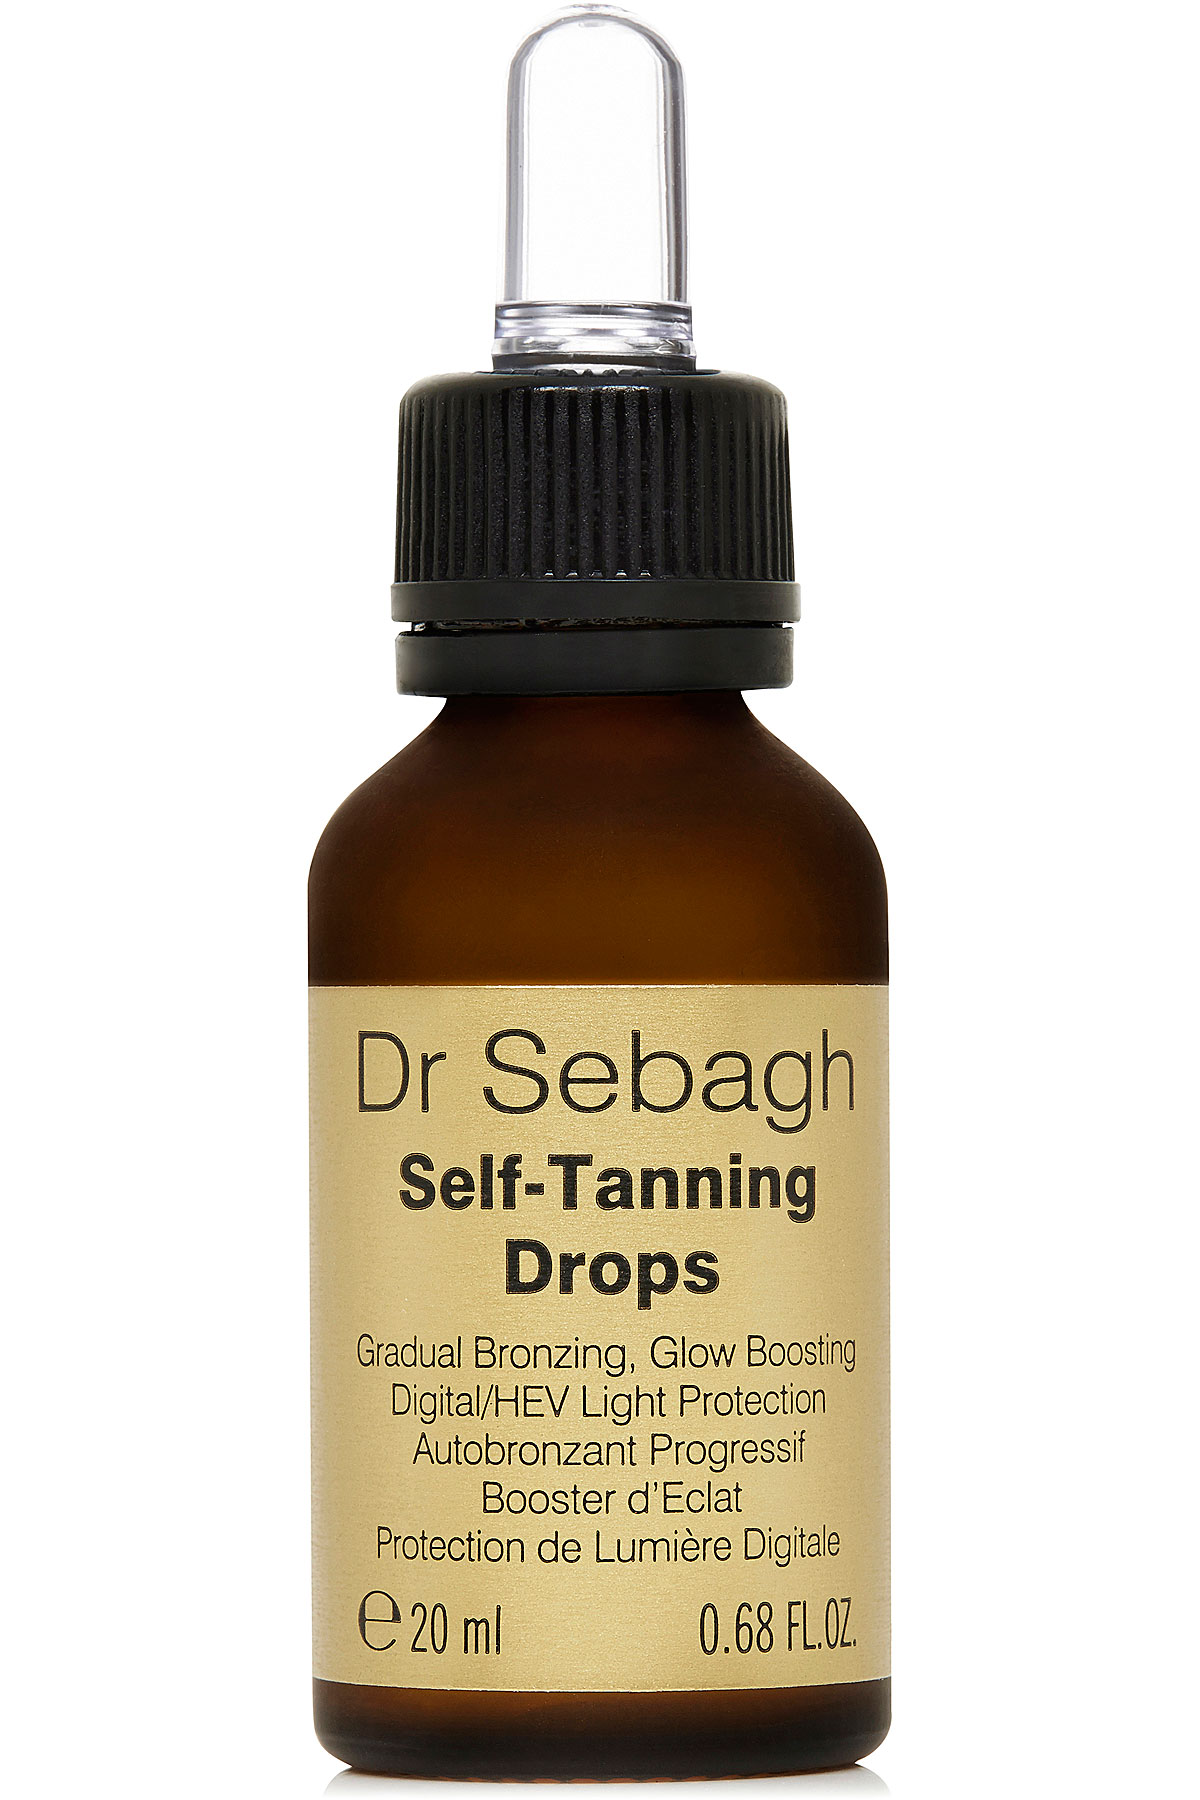 Dr Sebagh Beauty for Women, Self-tanning Drops - 20 Ml, 2019, 20 ml